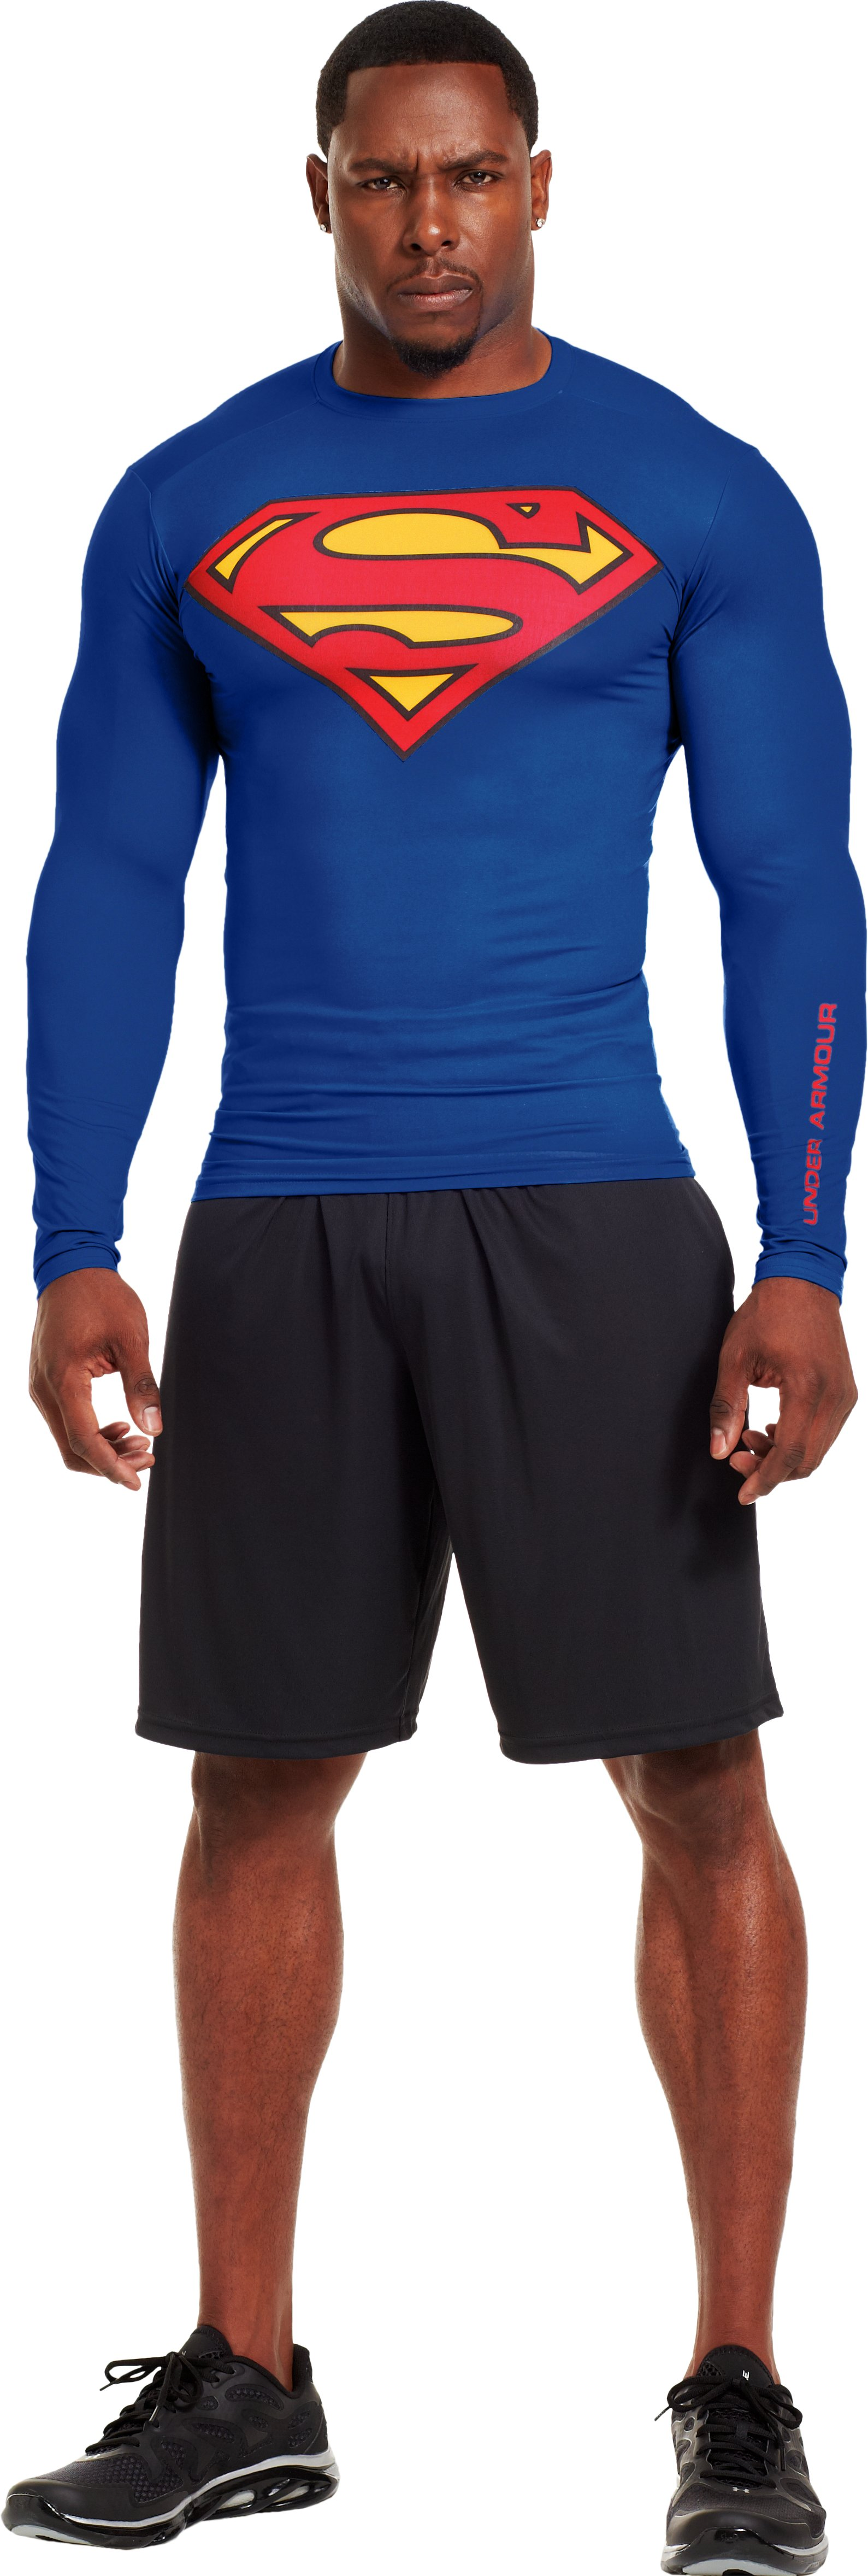 Men's Under Armour® Alter Ego Compression Long Sleeve Shirt, Royal